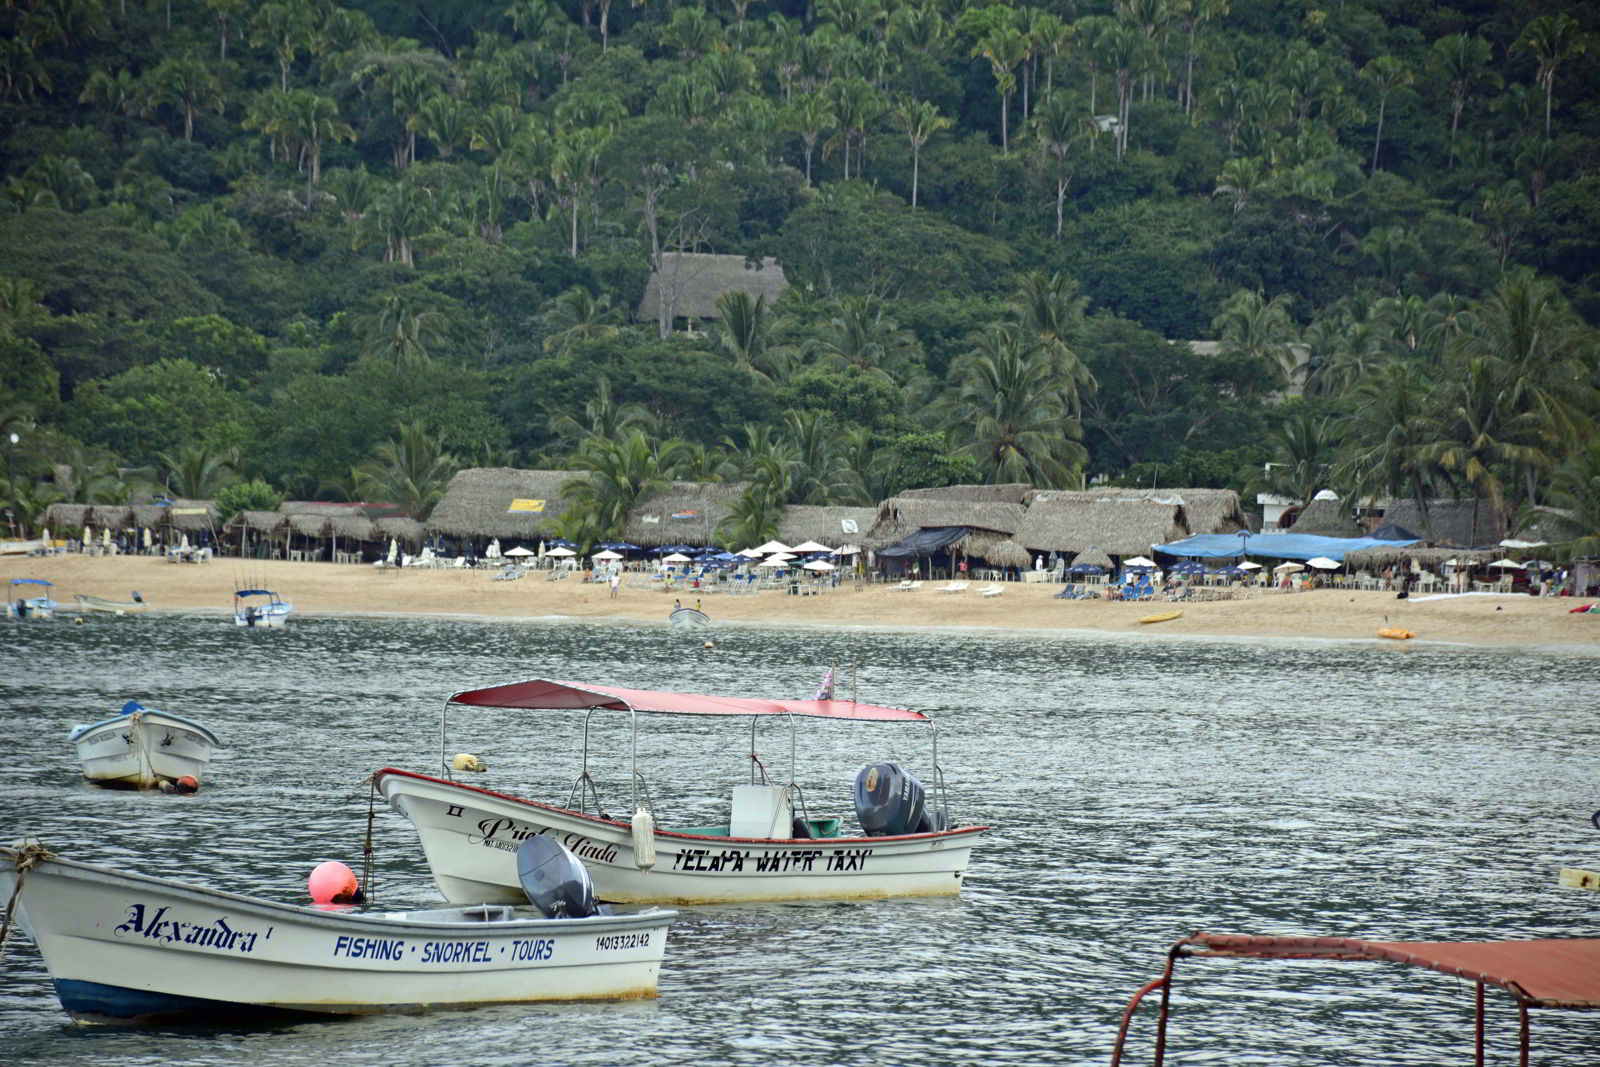 An image of Yelapa Beach in Jalisco, Mexico.